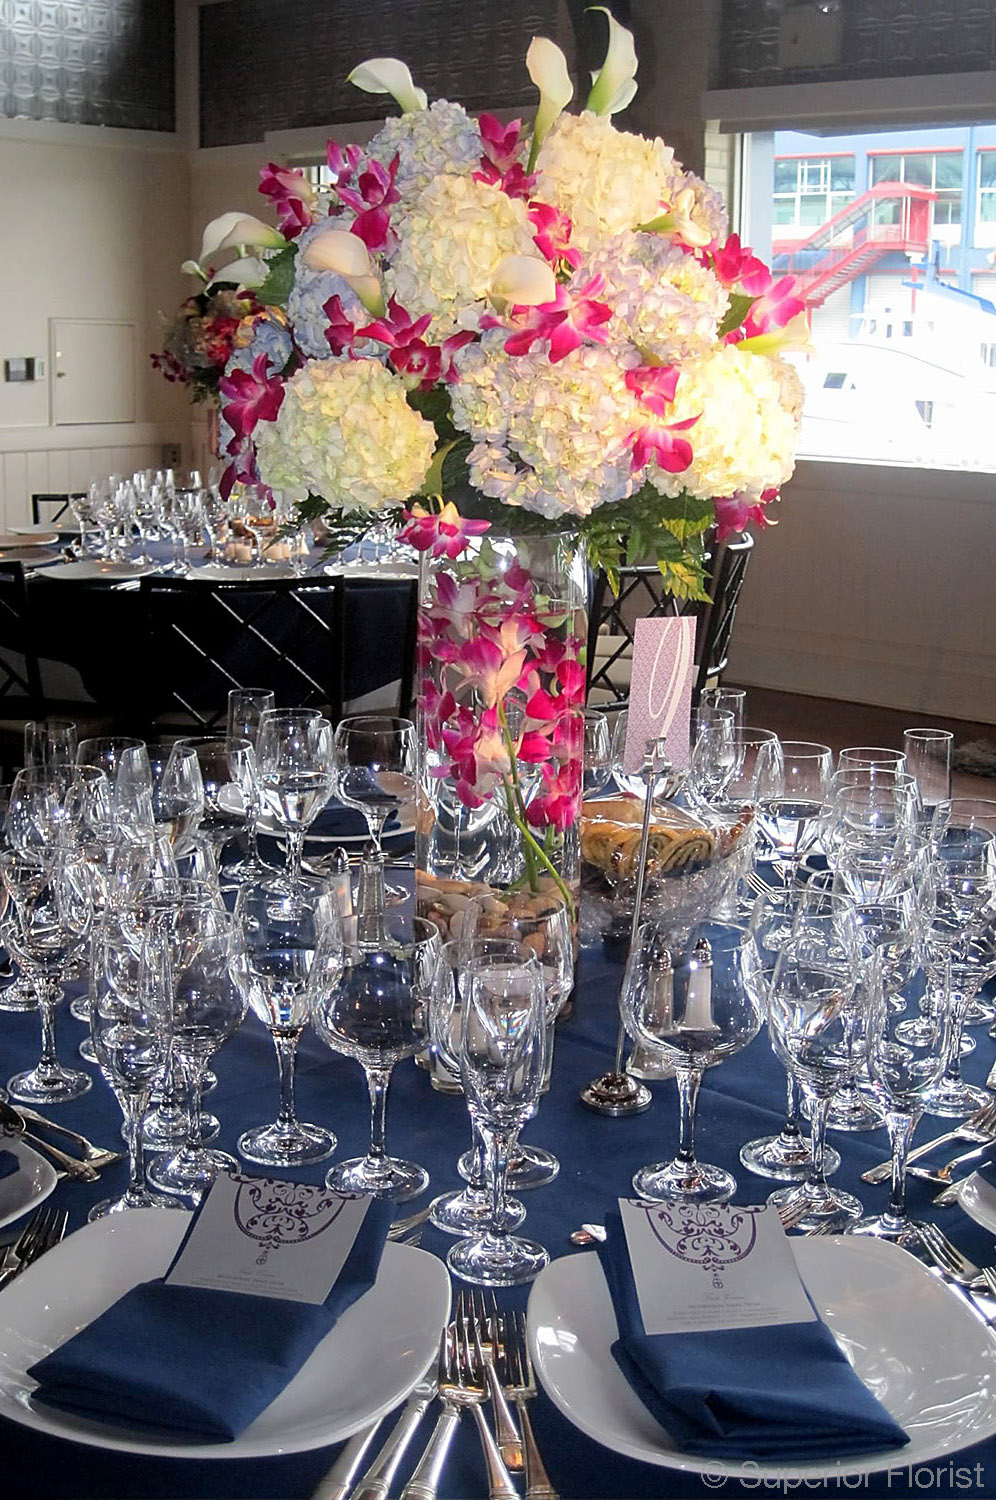 Superior Florist – Centerpieces:  Large arrangement of white and light blue Hydrangeas, Dendrobiums and Callas on top of a clear glass, cylinder vase. Submerged orchids and river rocks inside of vase.